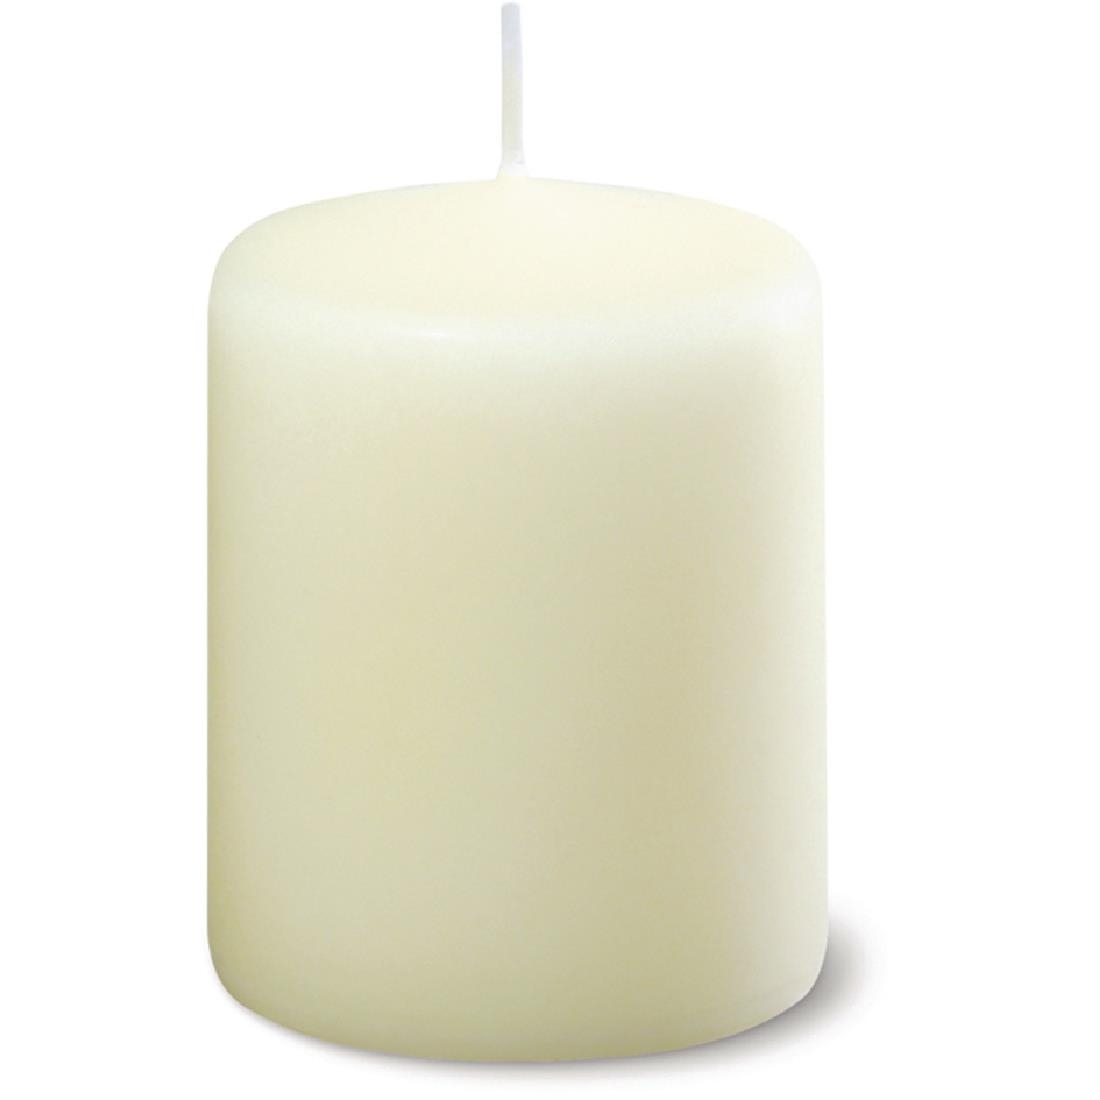 Image of Ivory Pillar Short 3inch Candle (Pack of 12) Pack of 12